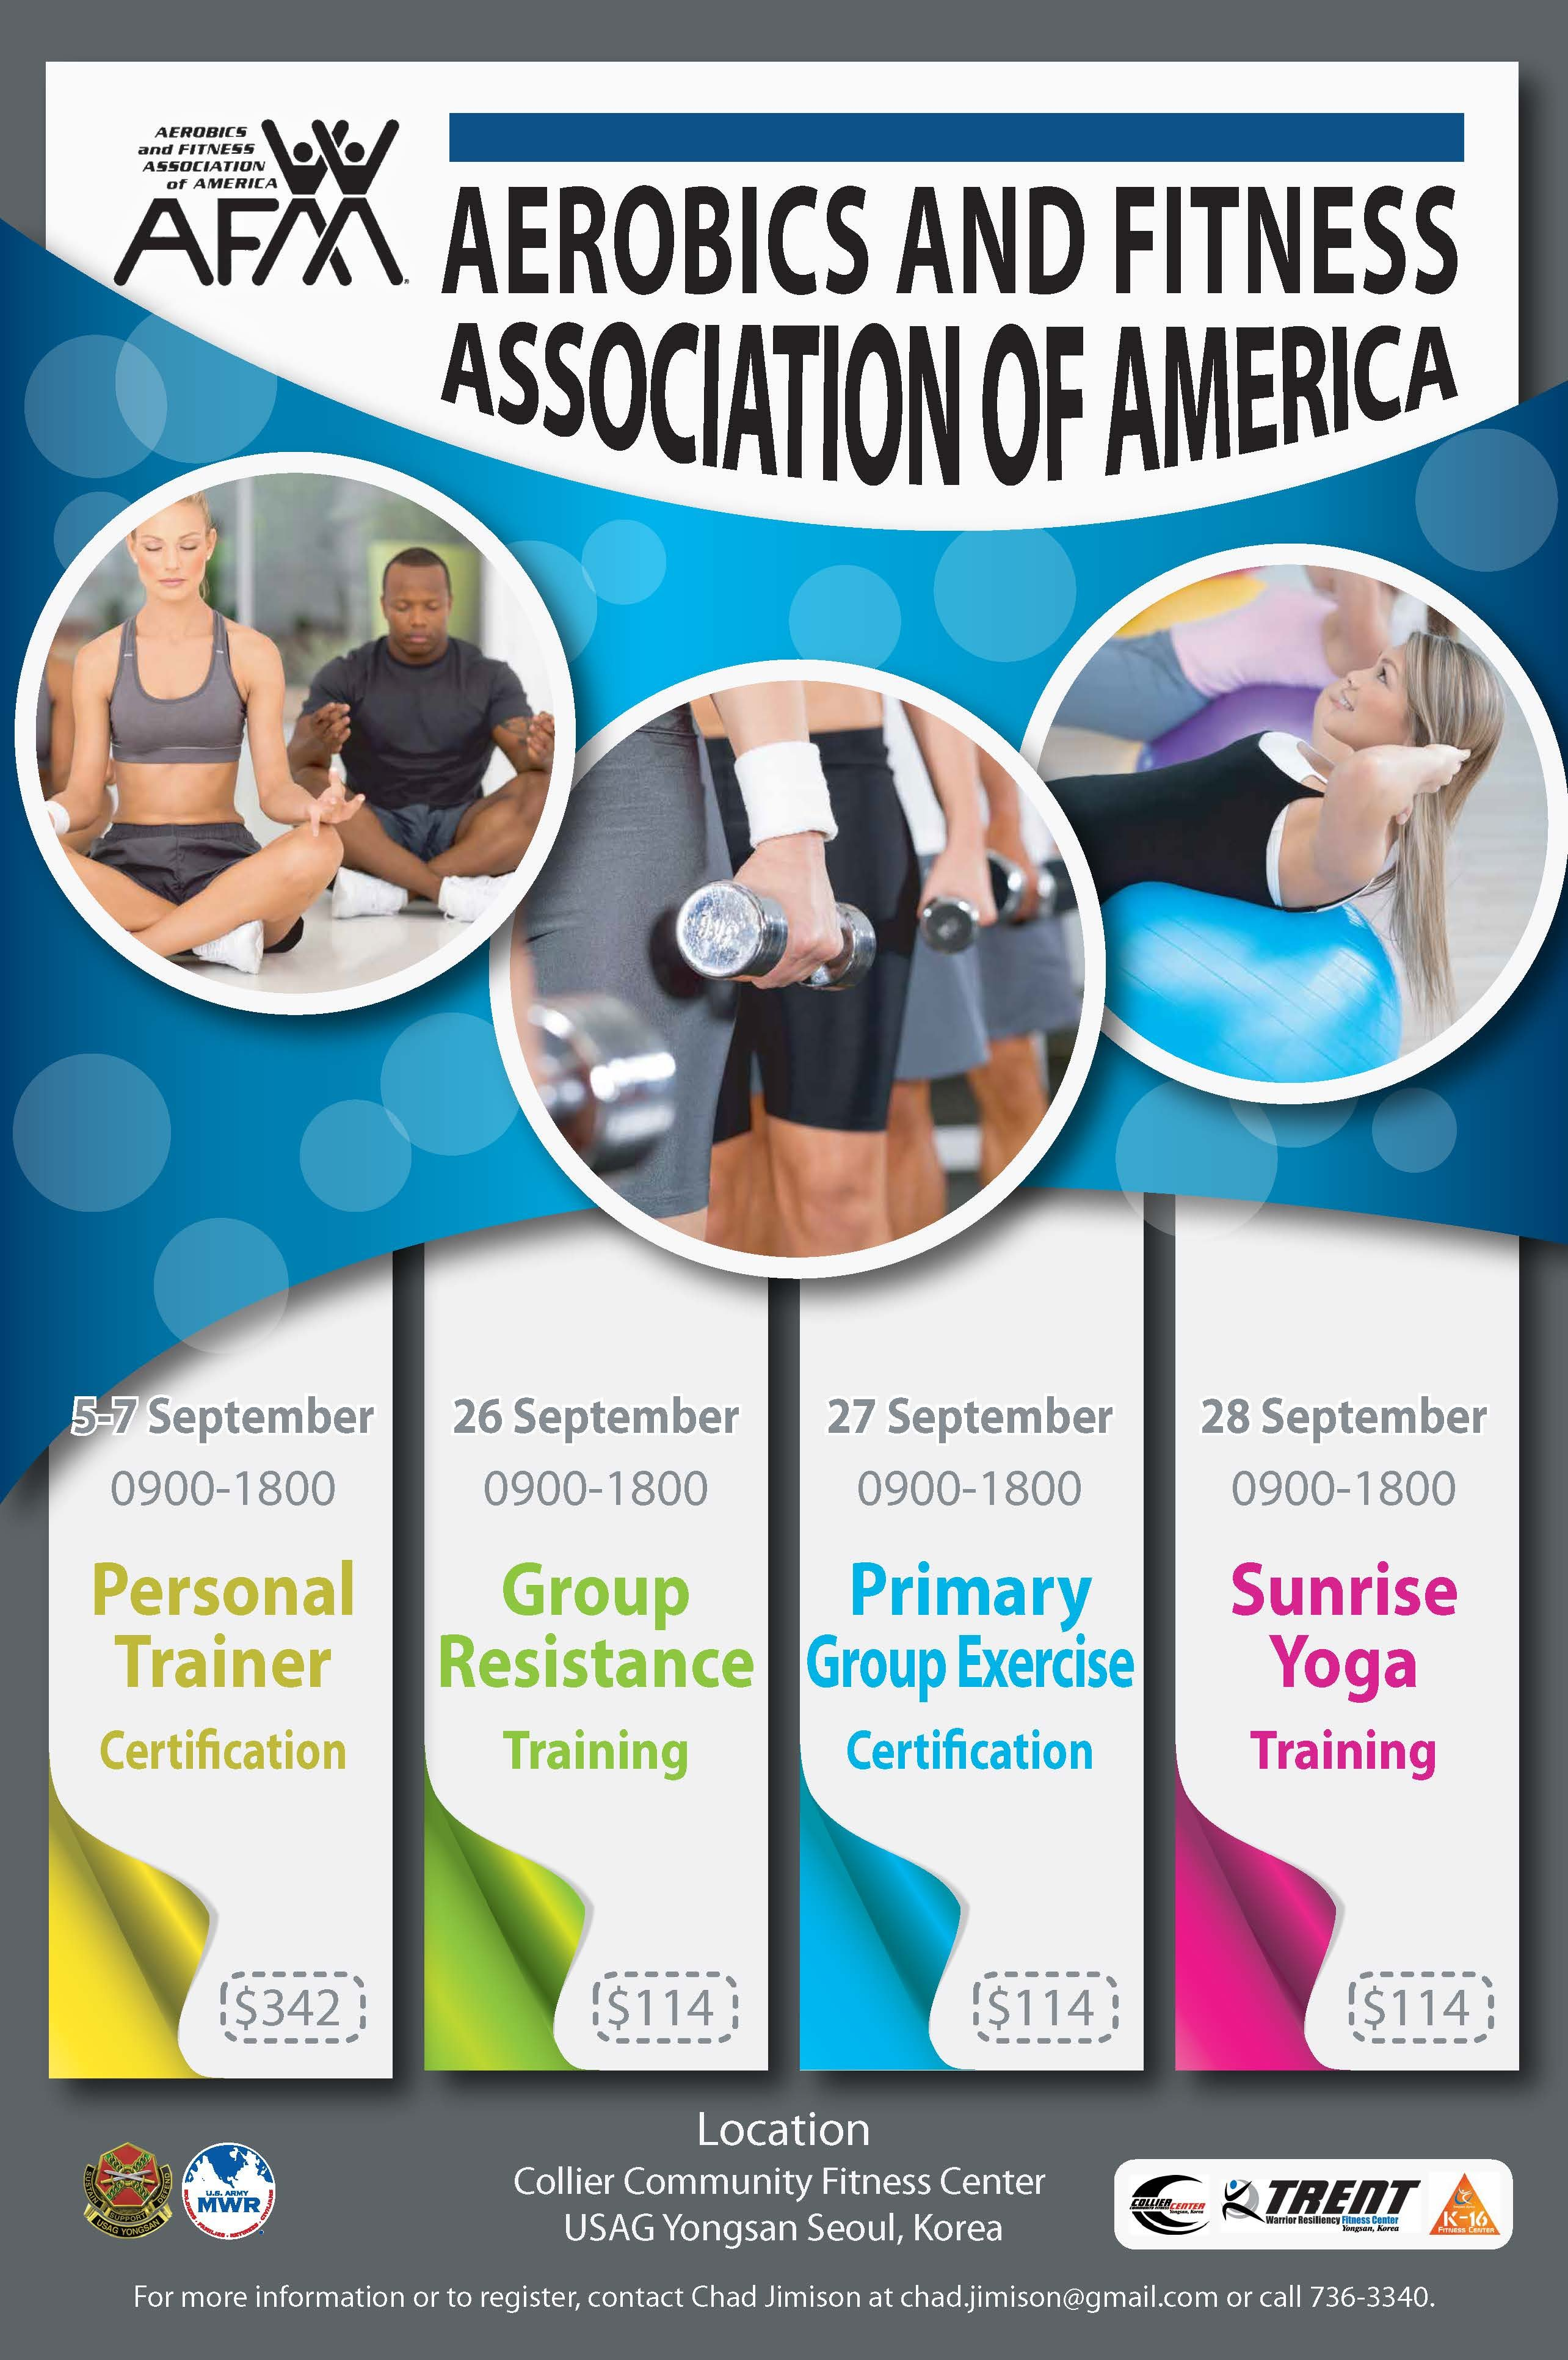 Group Fitness Courses Certification Afaa Apex Korea